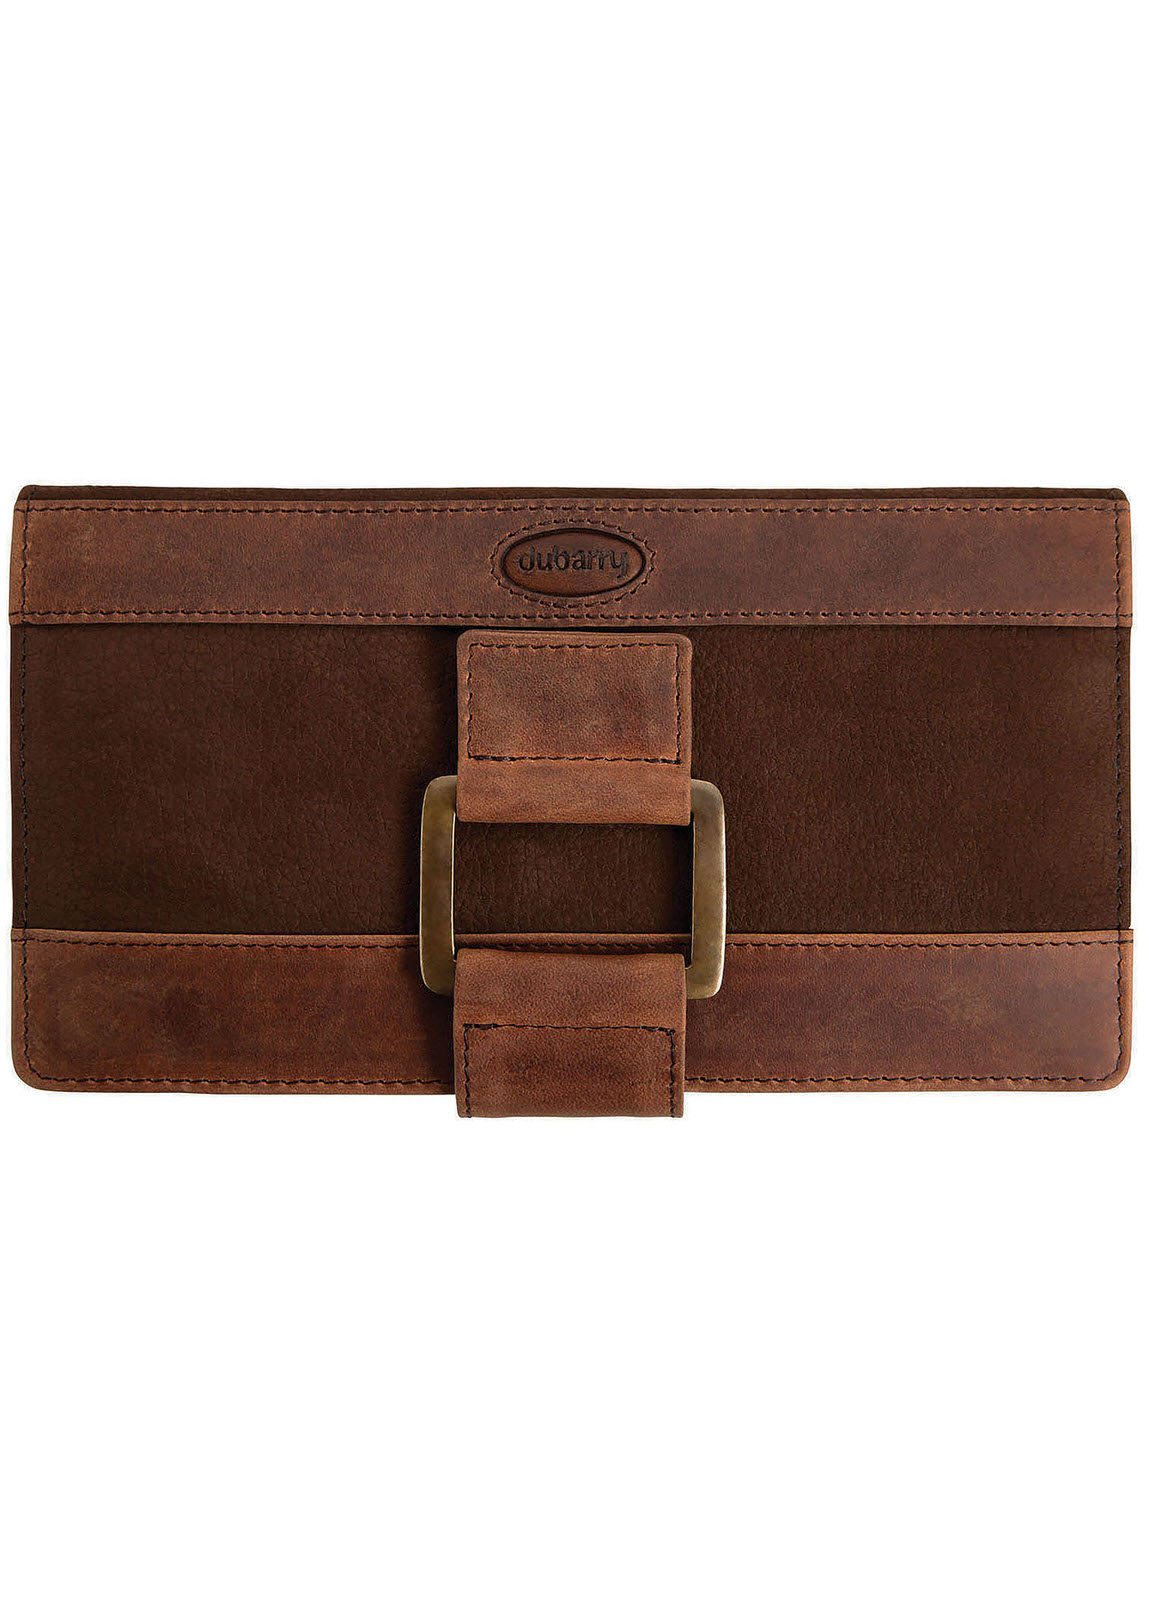 Dunbrody_Leather_Purse_Walnut_Image_1